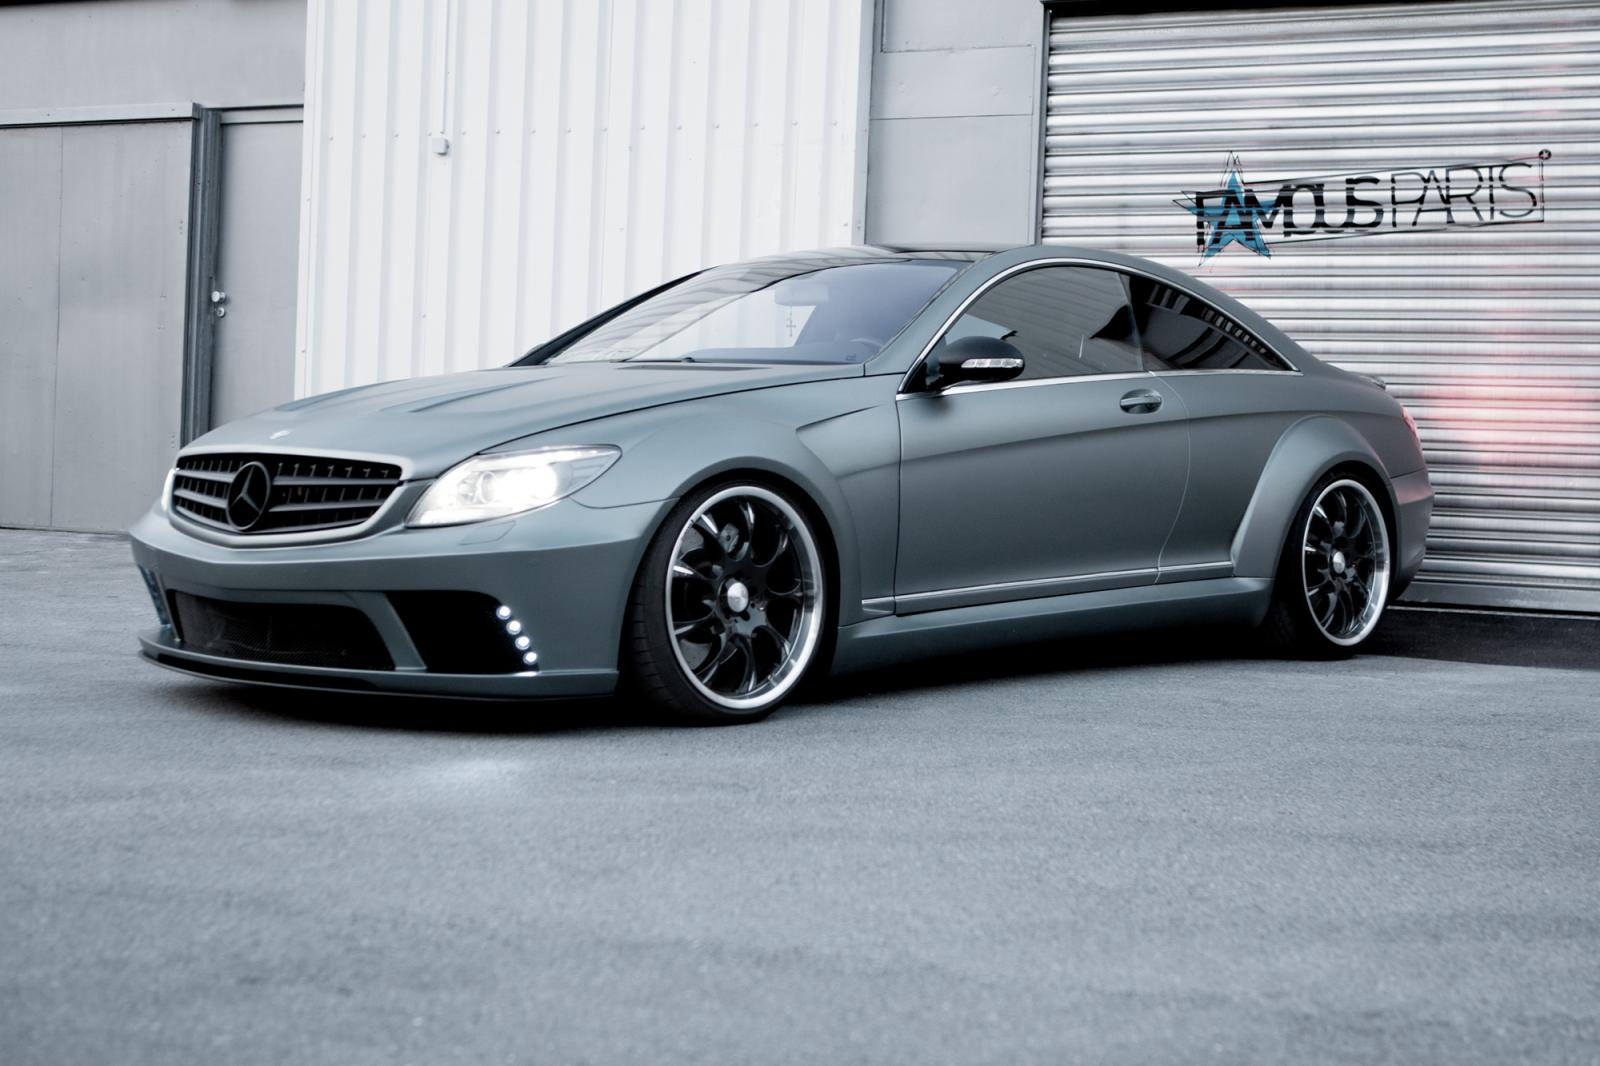 mercedes benz cl63 amg tuned by famous parts. Black Bedroom Furniture Sets. Home Design Ideas